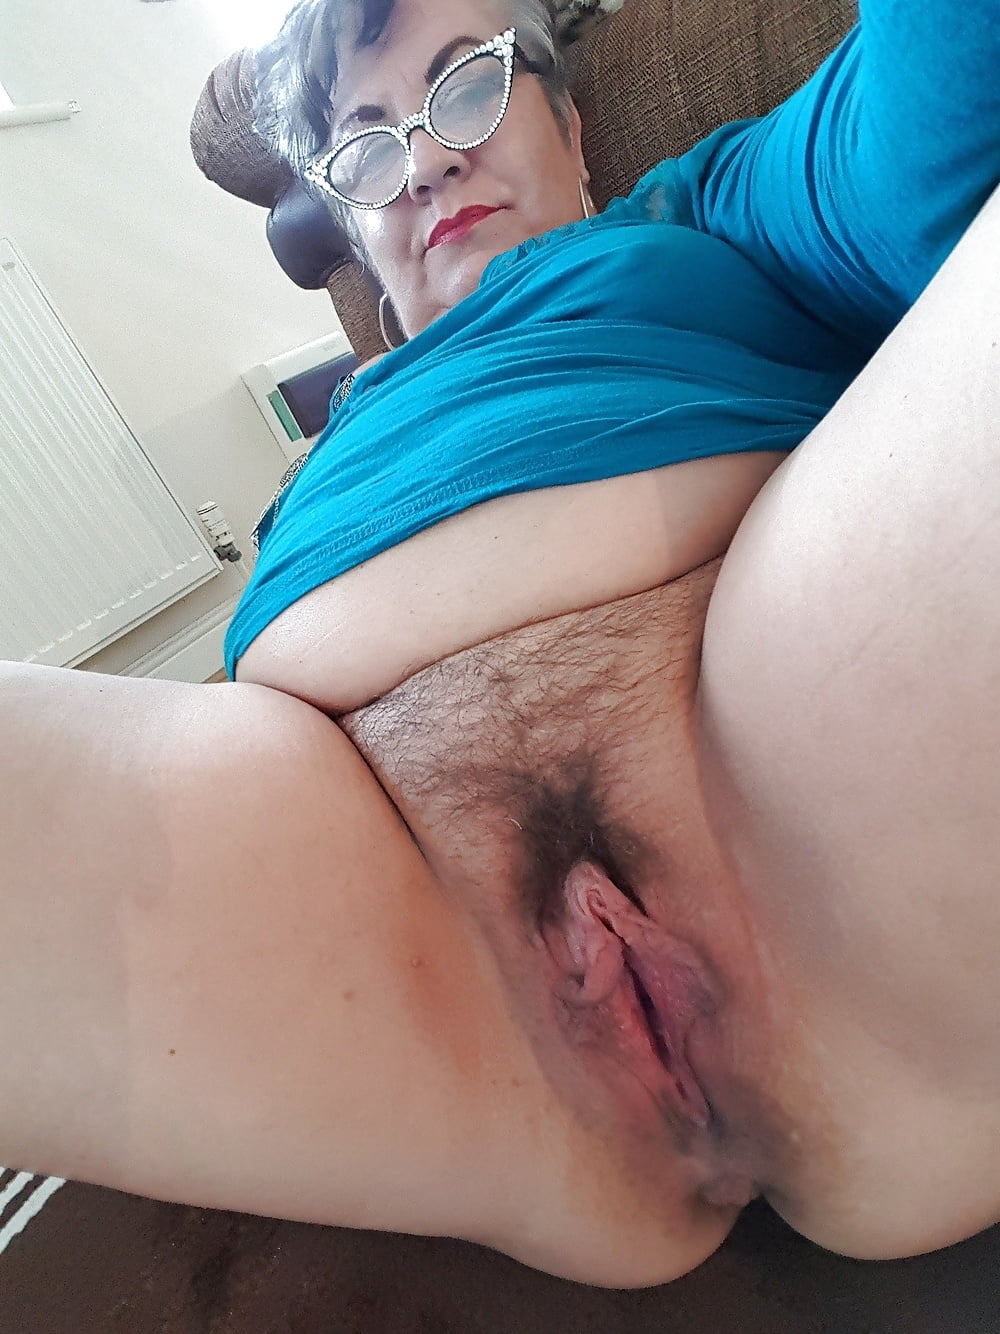 Milf cunt selfies, buxom woman wearing boots